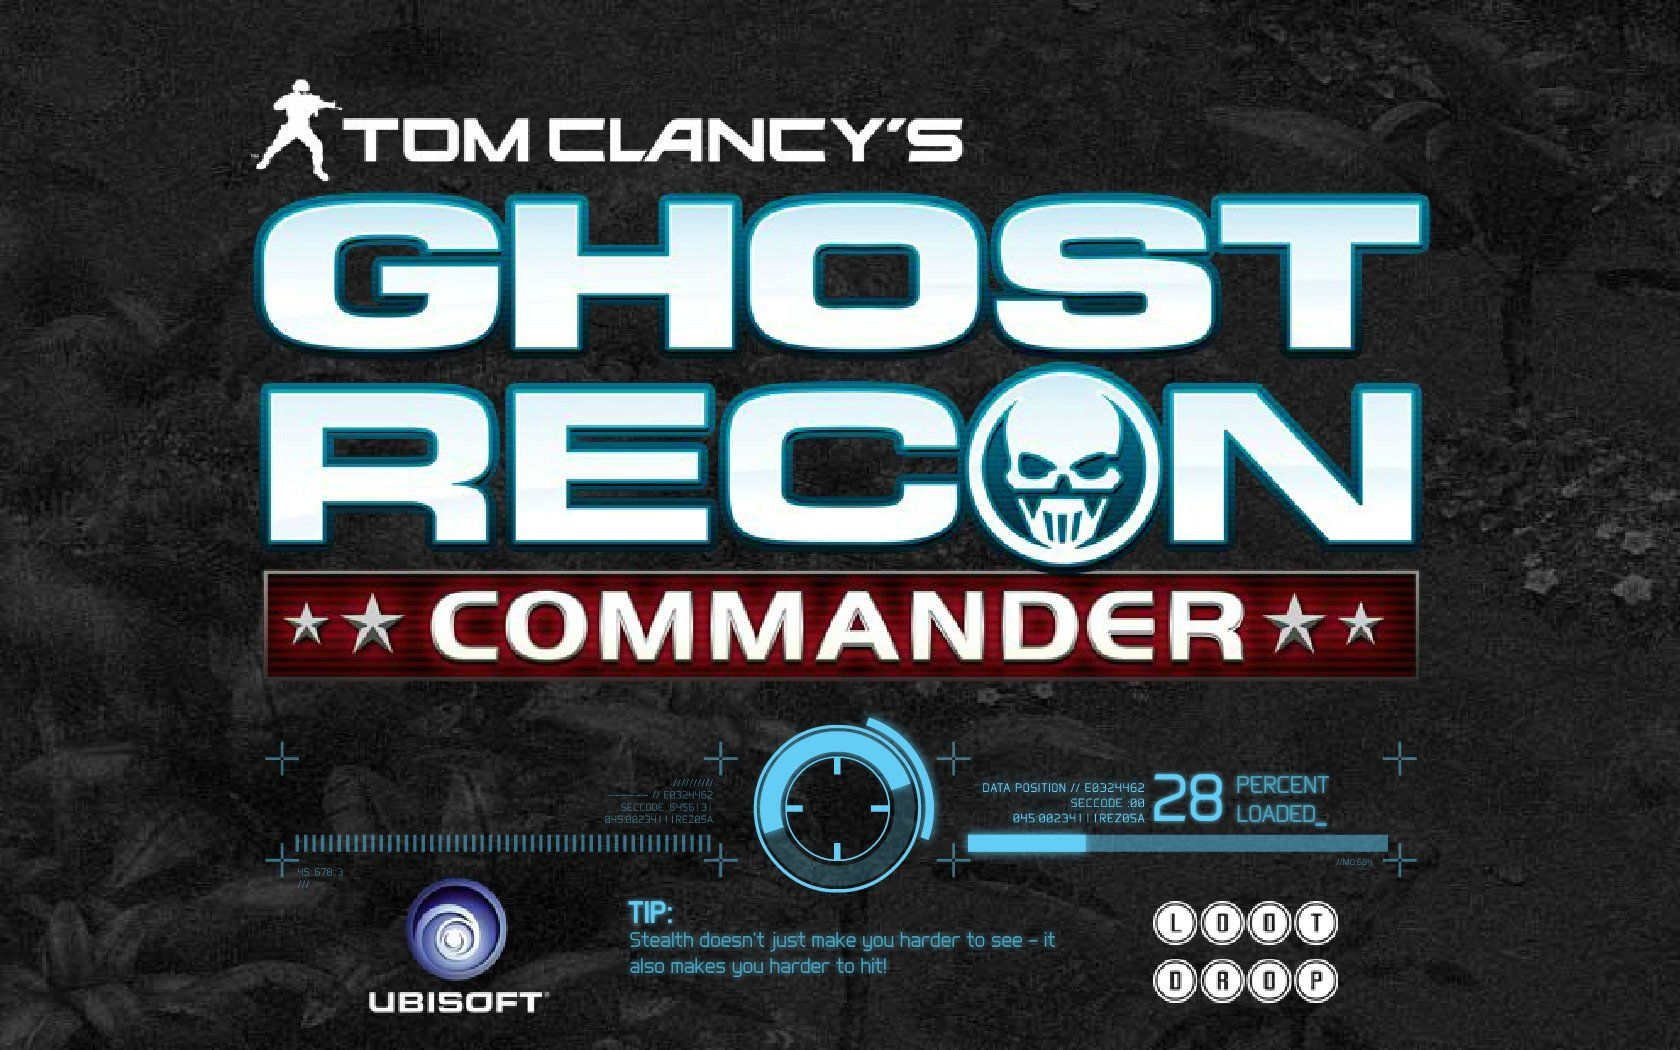 Tom Clancy's Ghost Recon: Commander Browser Loading screen